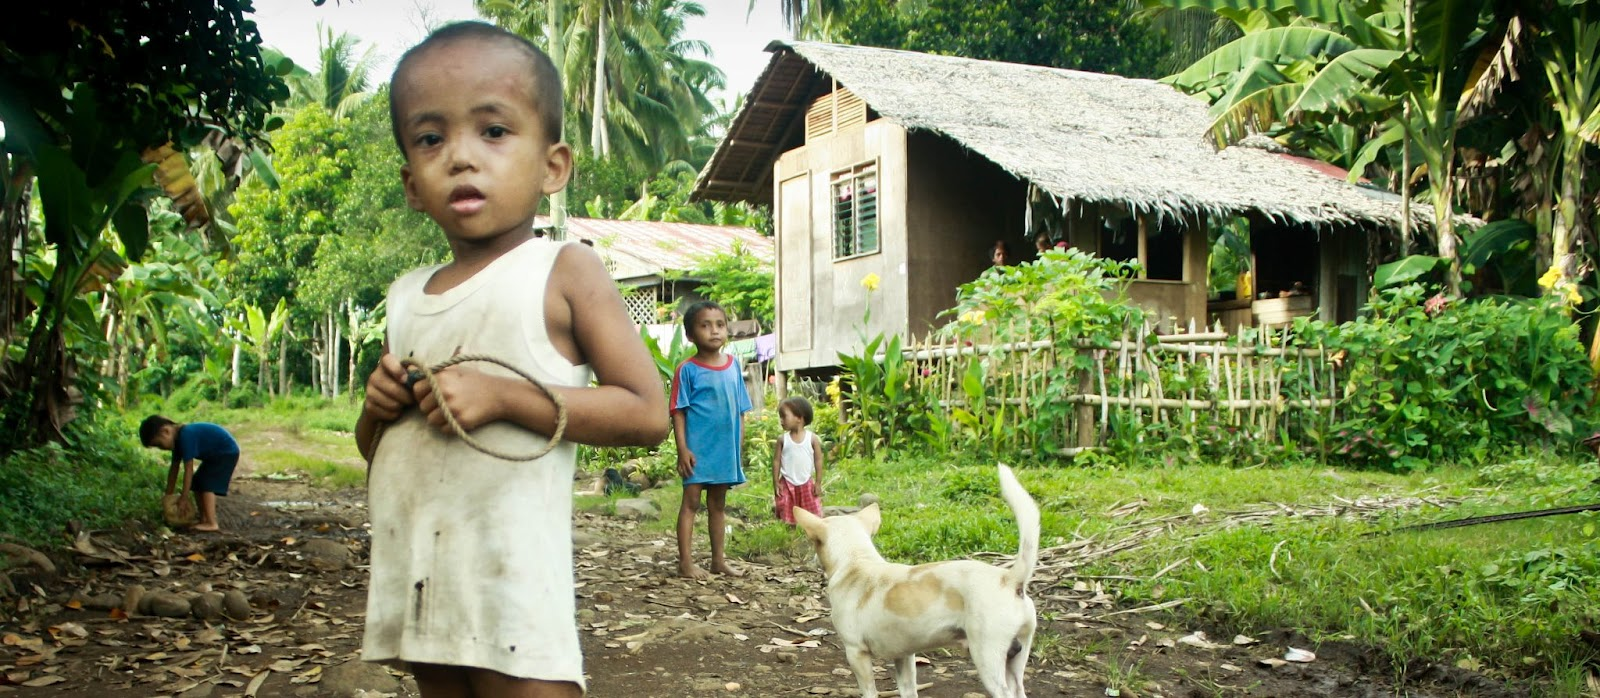 Image of children in a typical rural community in the Philippines